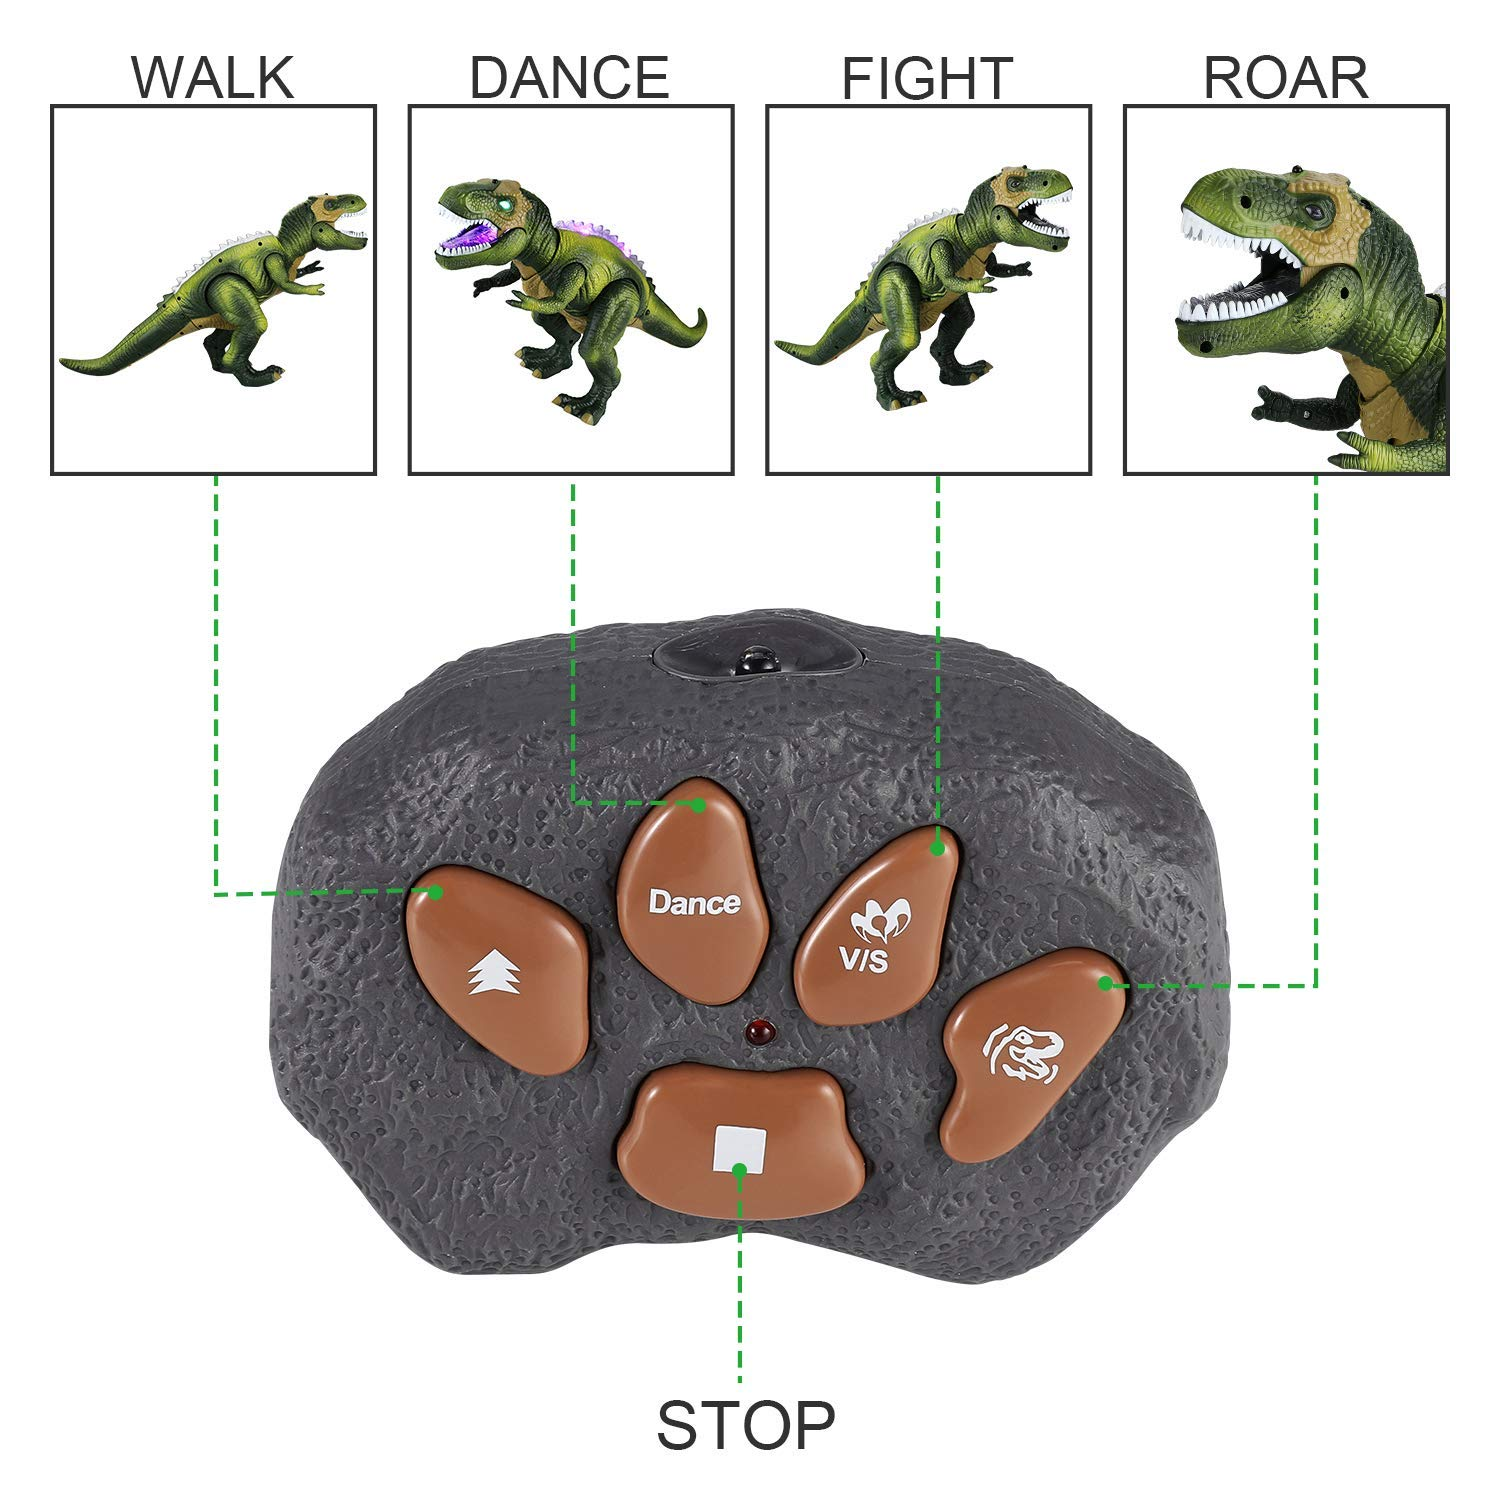 Tuko Light Up Remote Control Dinosaur Toys Jurassic World Walking and Roaring Realistic T-Rex Dinosaur Toys with Glowing Eyes, Walking Movement, Shaking Head for Toddlers Boys Girls by Tuko (Image #4)